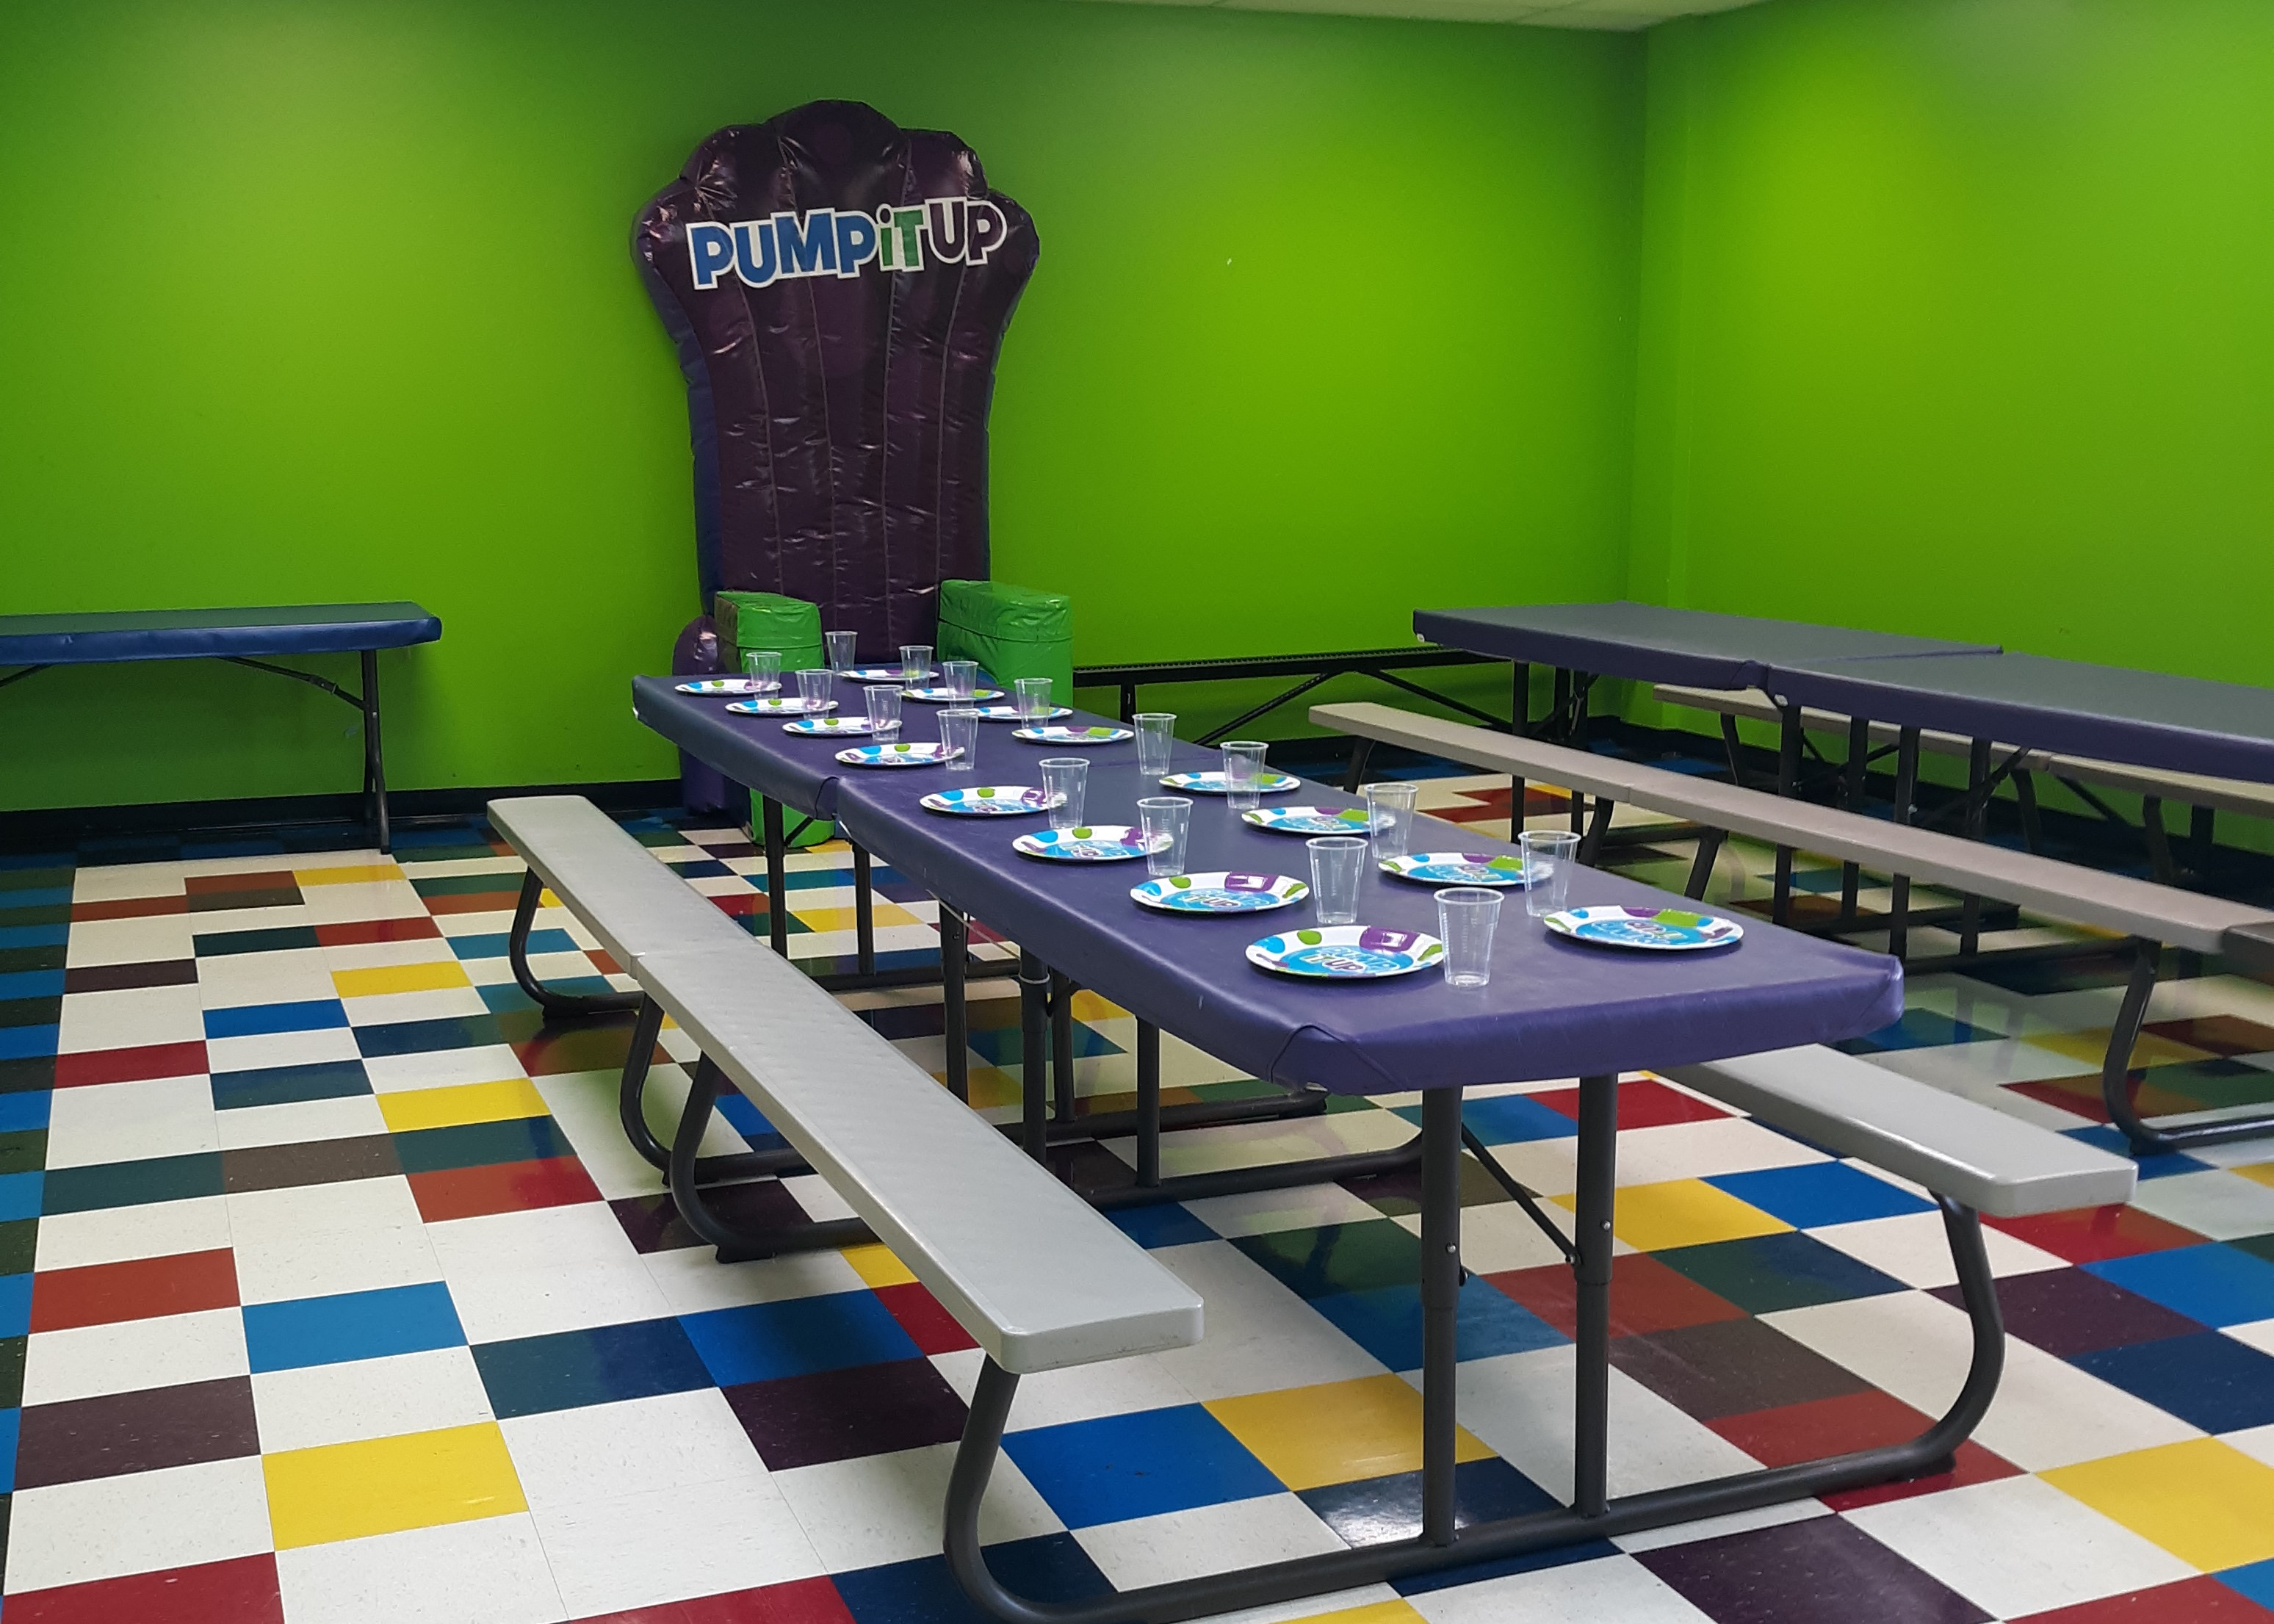 Pump It Up  private birthday party space with tables and inflatable chair for birthday child.